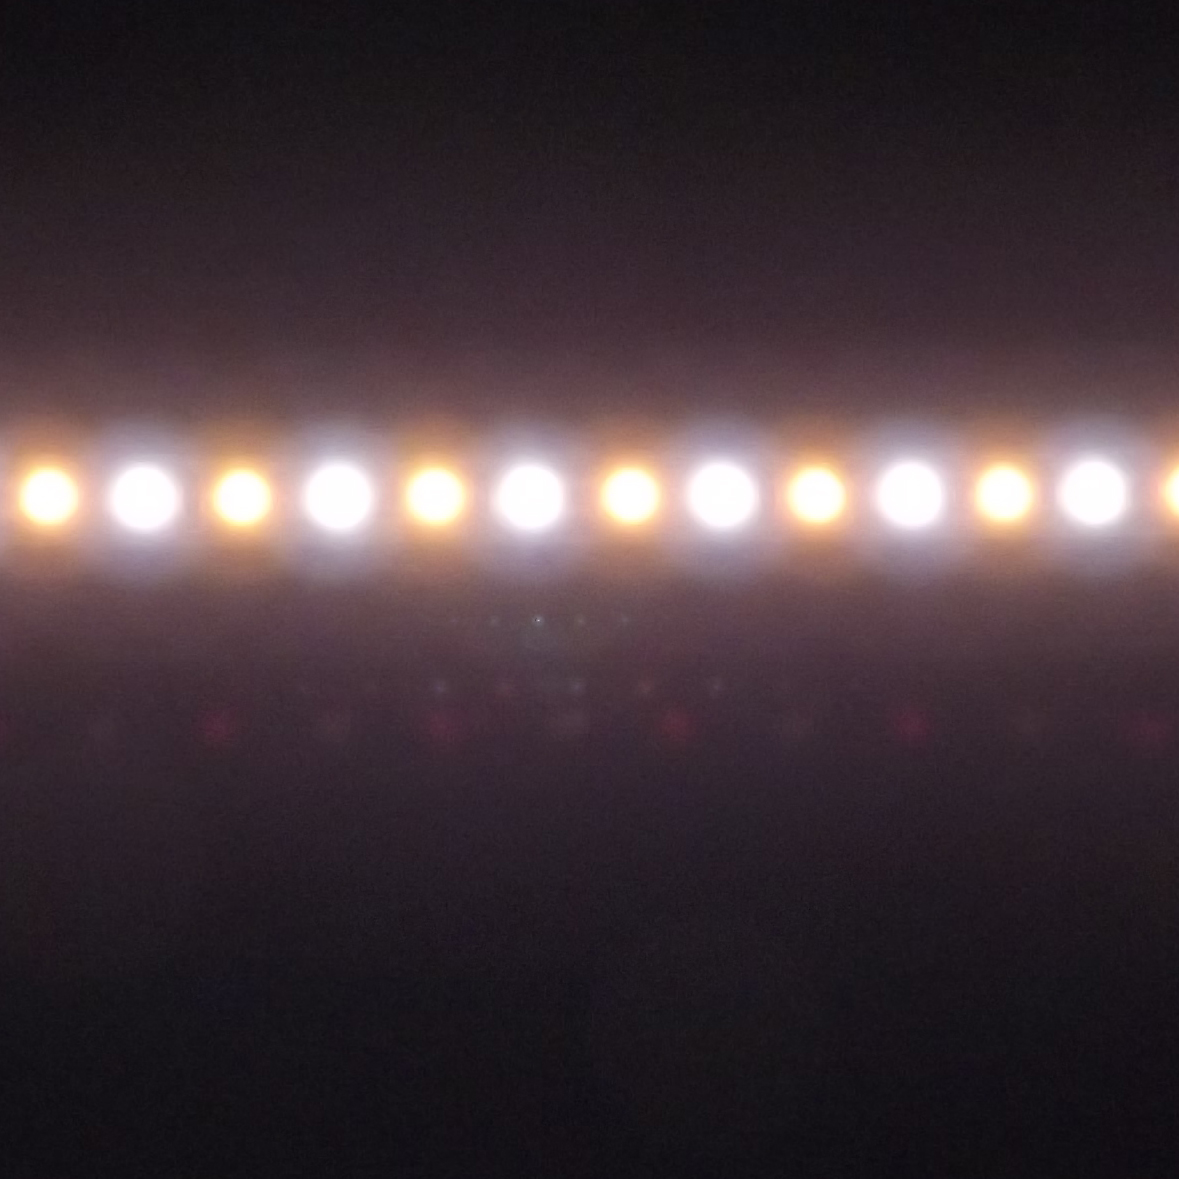 Environmentallights to launch new line of led strip lights at color tunable led strip light by environmentallightseasily adjust color temperature of led light strip mozeypictures Gallery